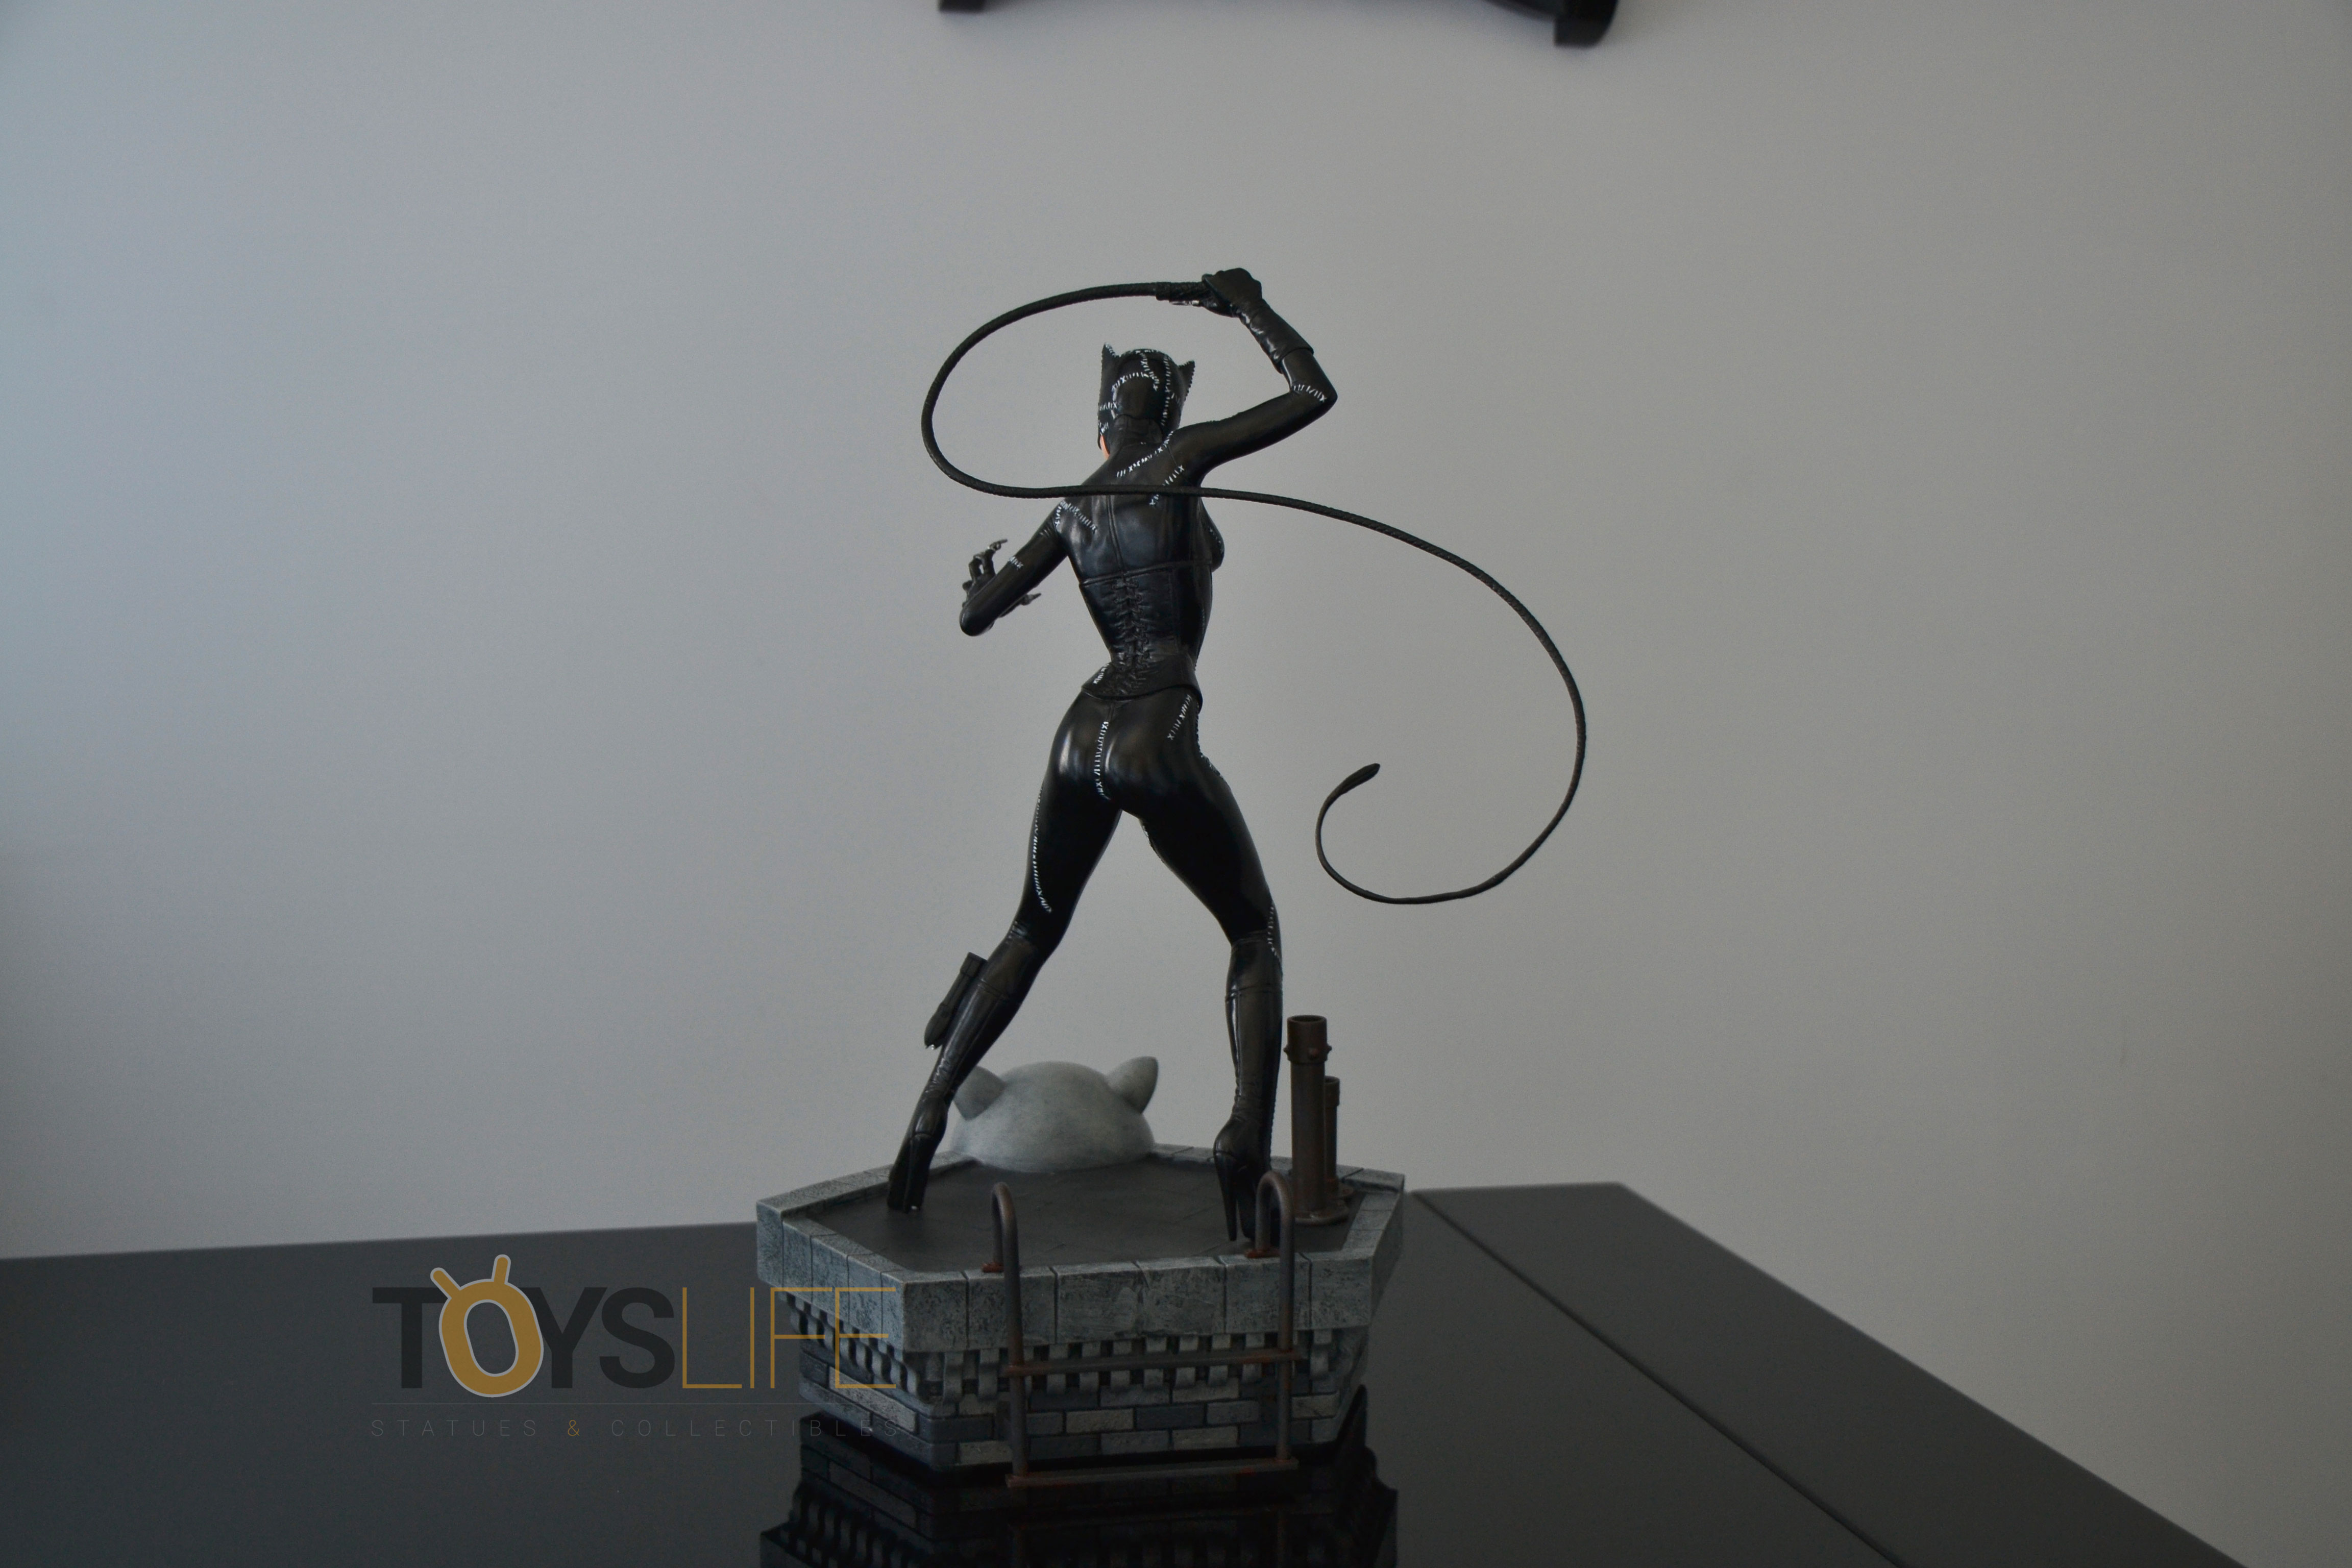 tweeterhead-catwoman-michelle-pfeiffer-maquette-toyslife-review-30